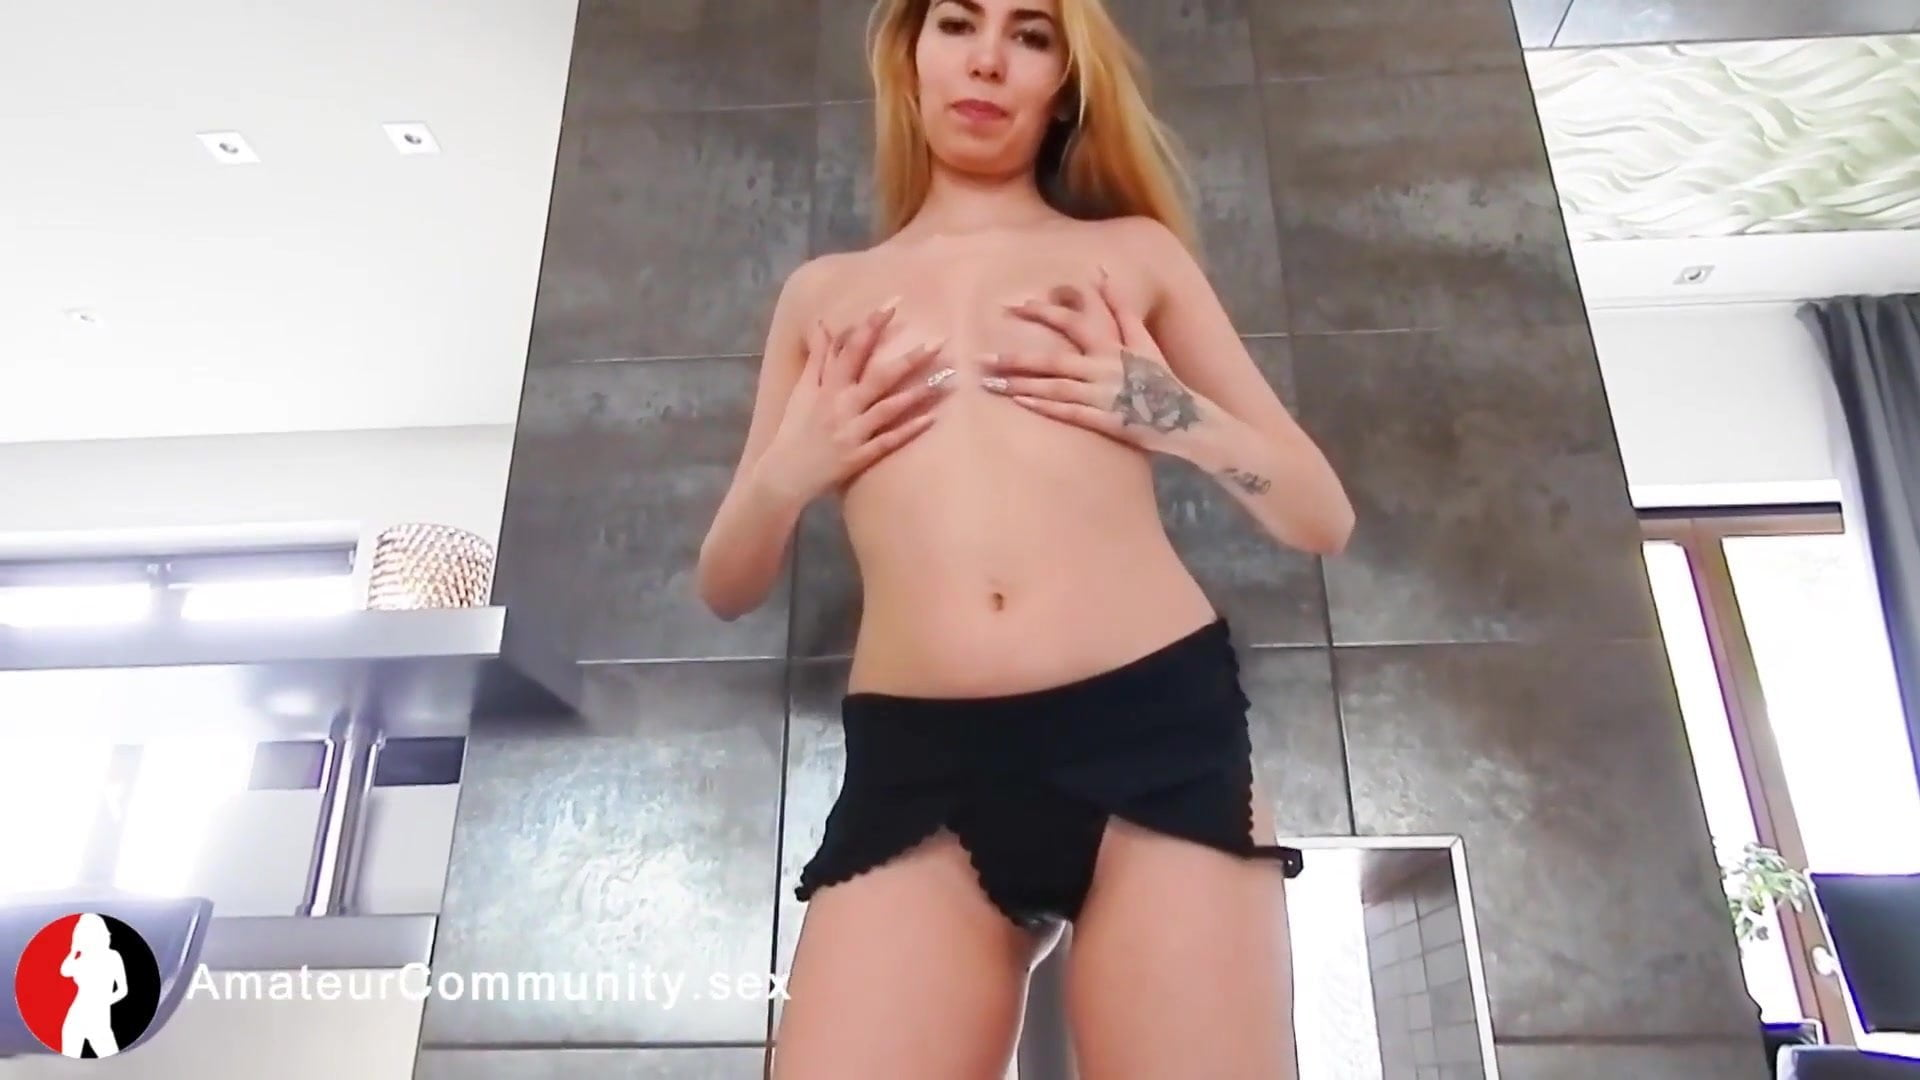 Webcam babe fiddling with her clit on camera